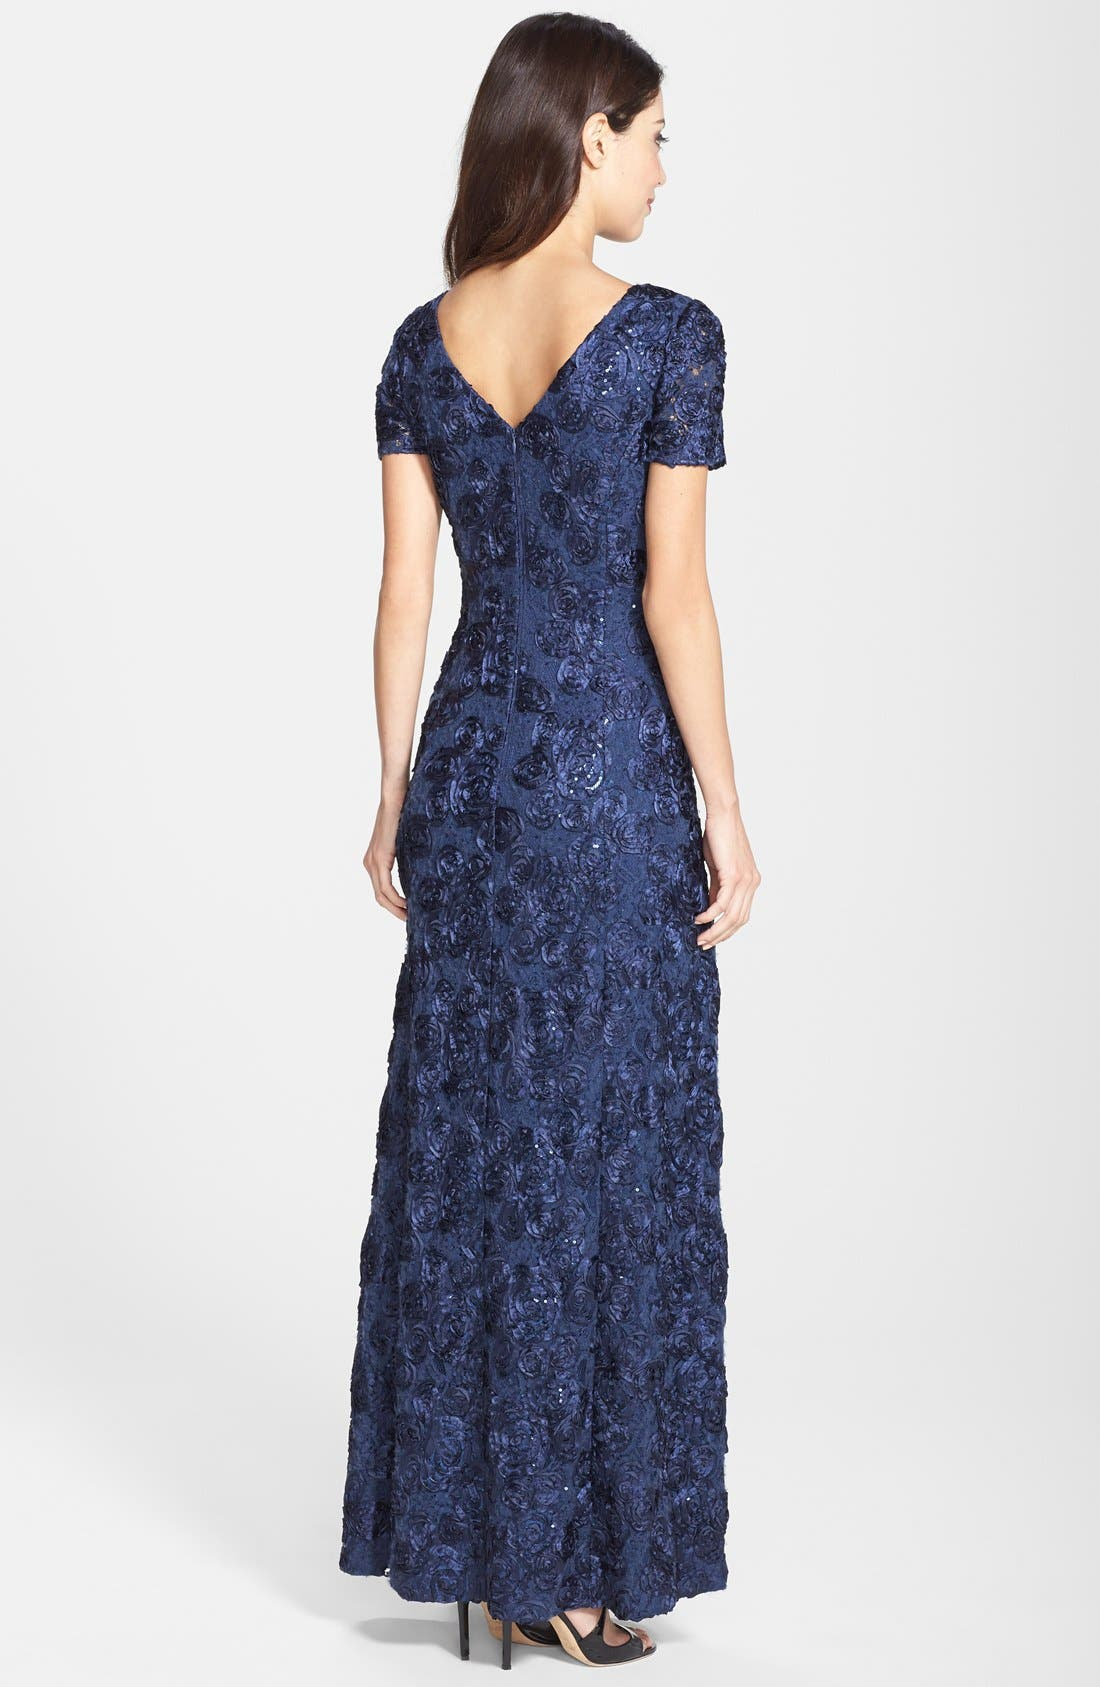 ALEX EVENINGS,                             Embellished Lace Gown,                             Alternate thumbnail 2, color,                             NAVY